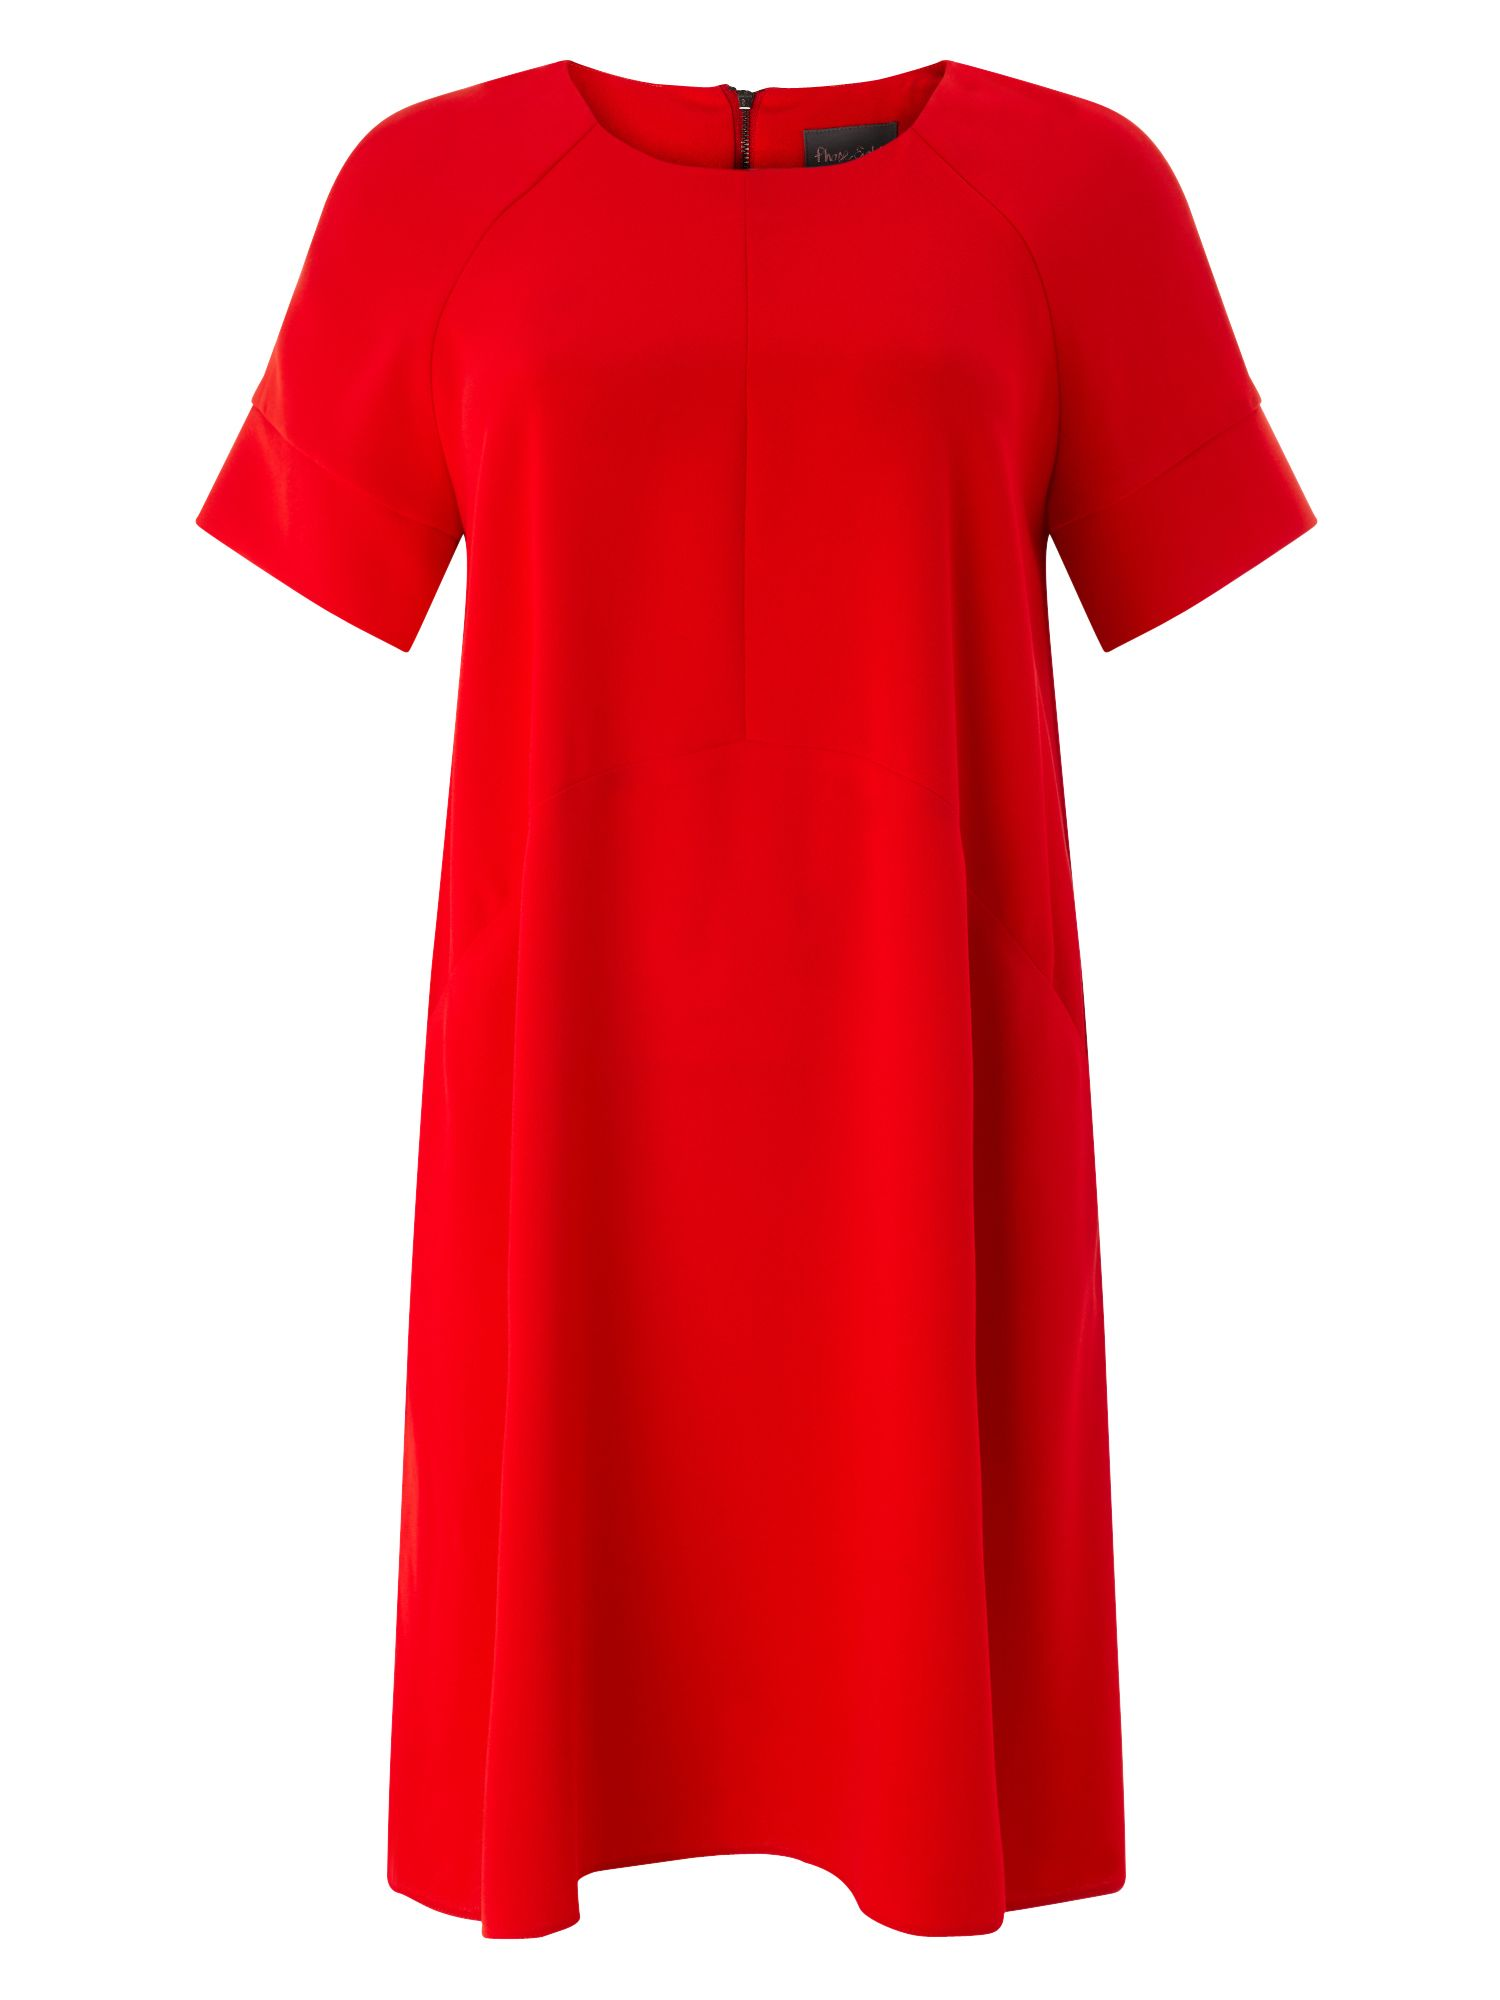 Phase 8 red dress goes